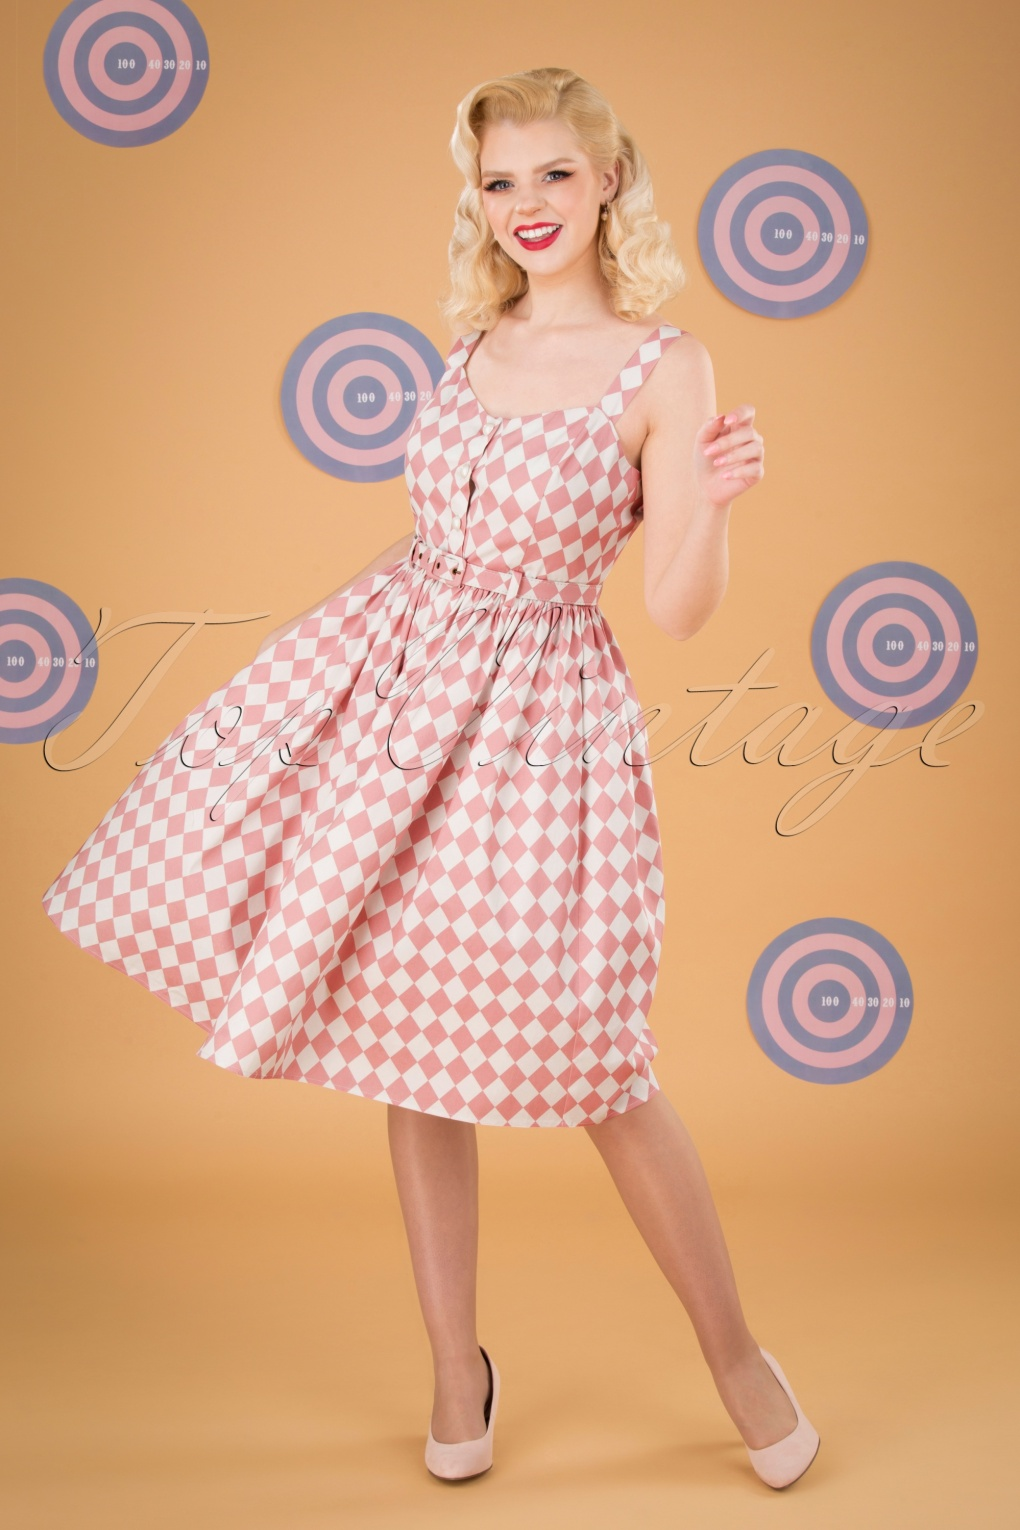 Vintage 50s Dresses: Best 1950s Dress Styles 50s Jemima Harlequin Swing Dress in Pink £65.17 AT vintagedancer.com